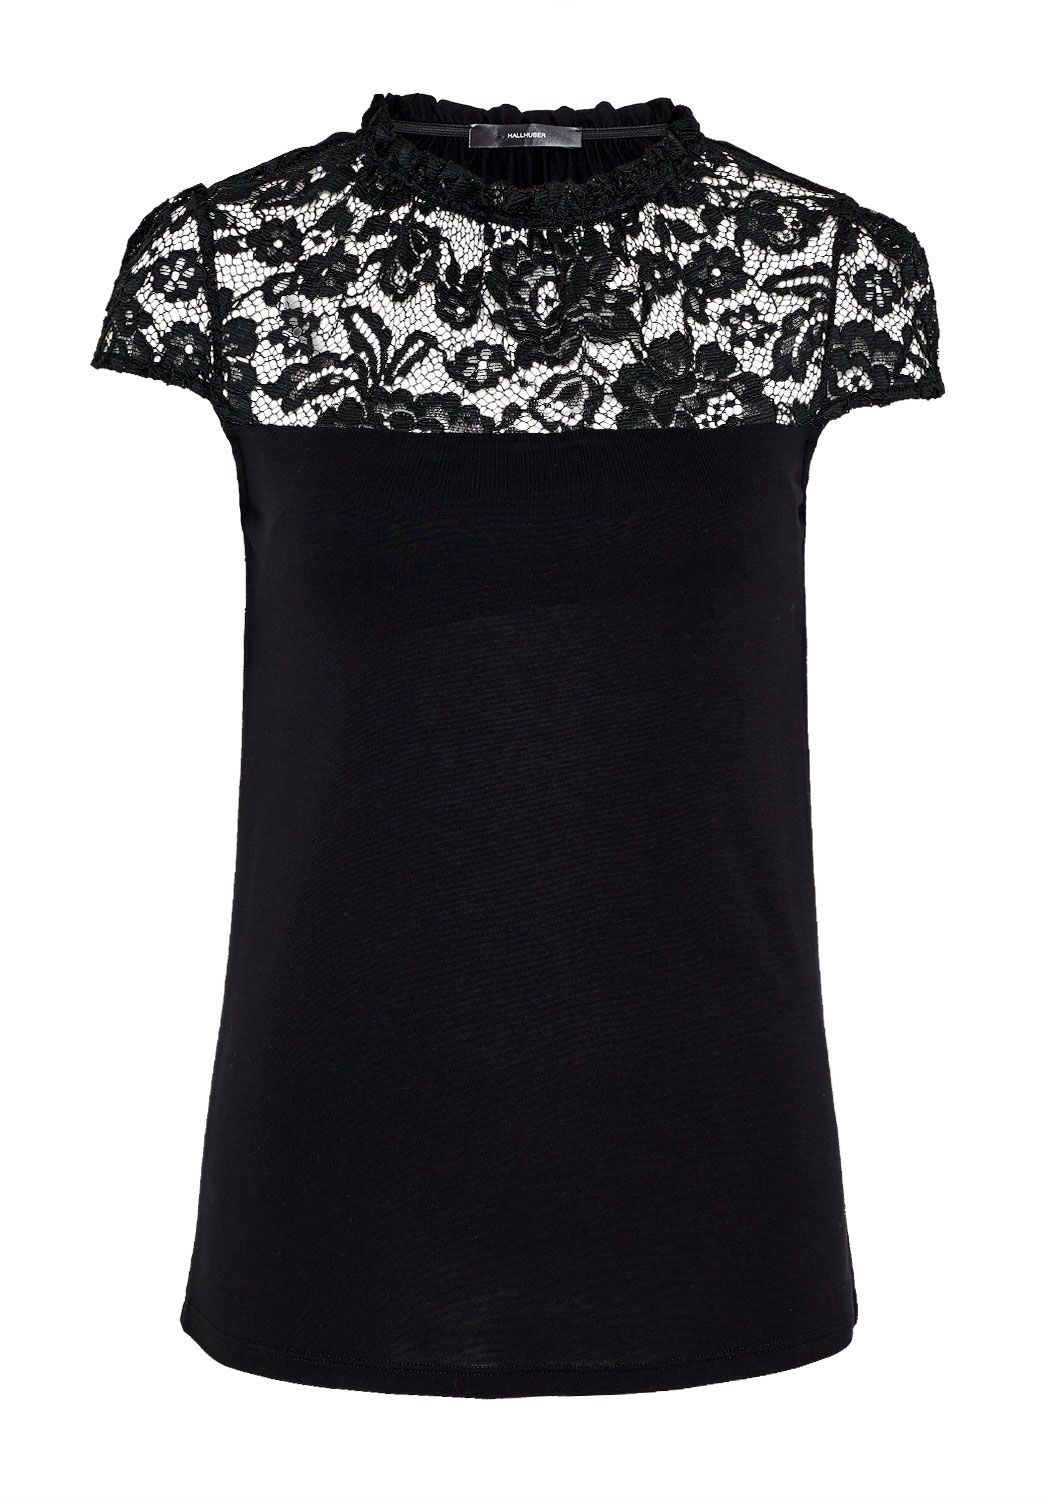 Hallhuber A-Line top with lace yoke, Black